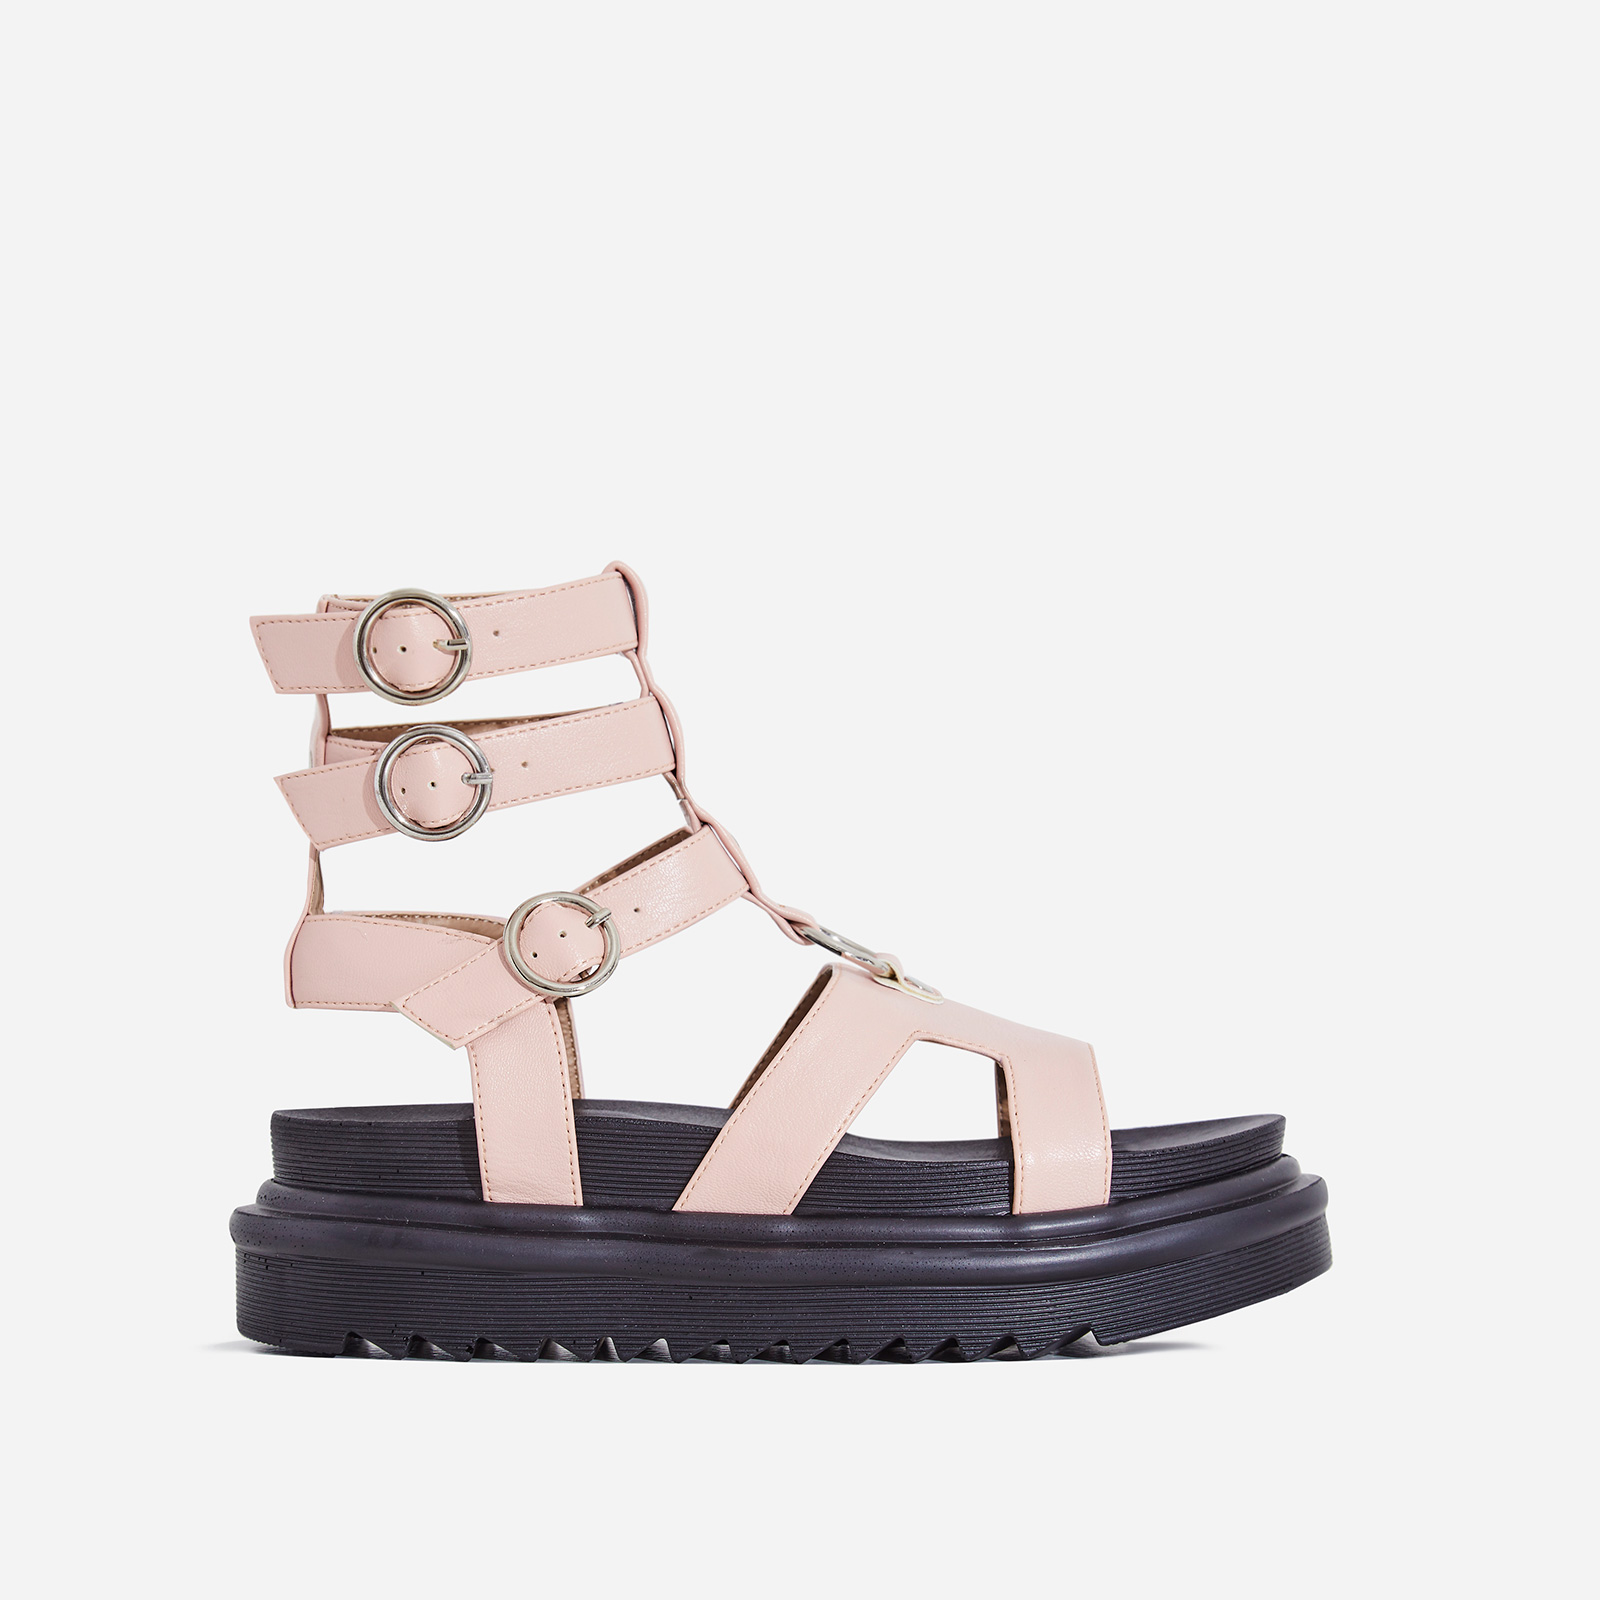 Gladys Chunky Sole Gladiator Sandal In Blush Pink Faux Leather